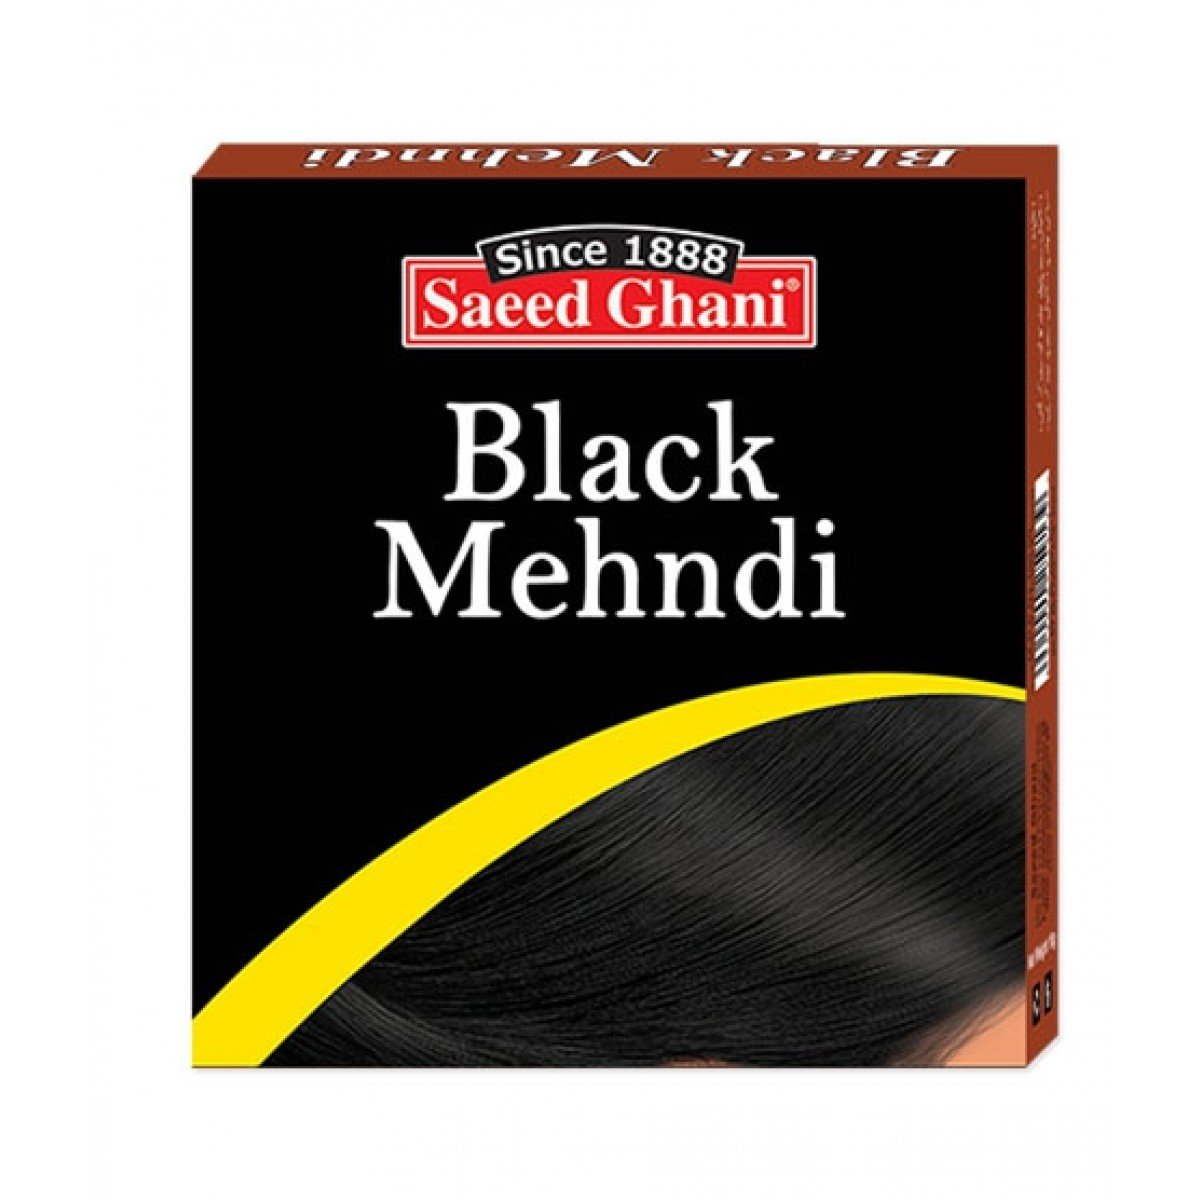 Saeed Ghani Black Mehndi (10gm)